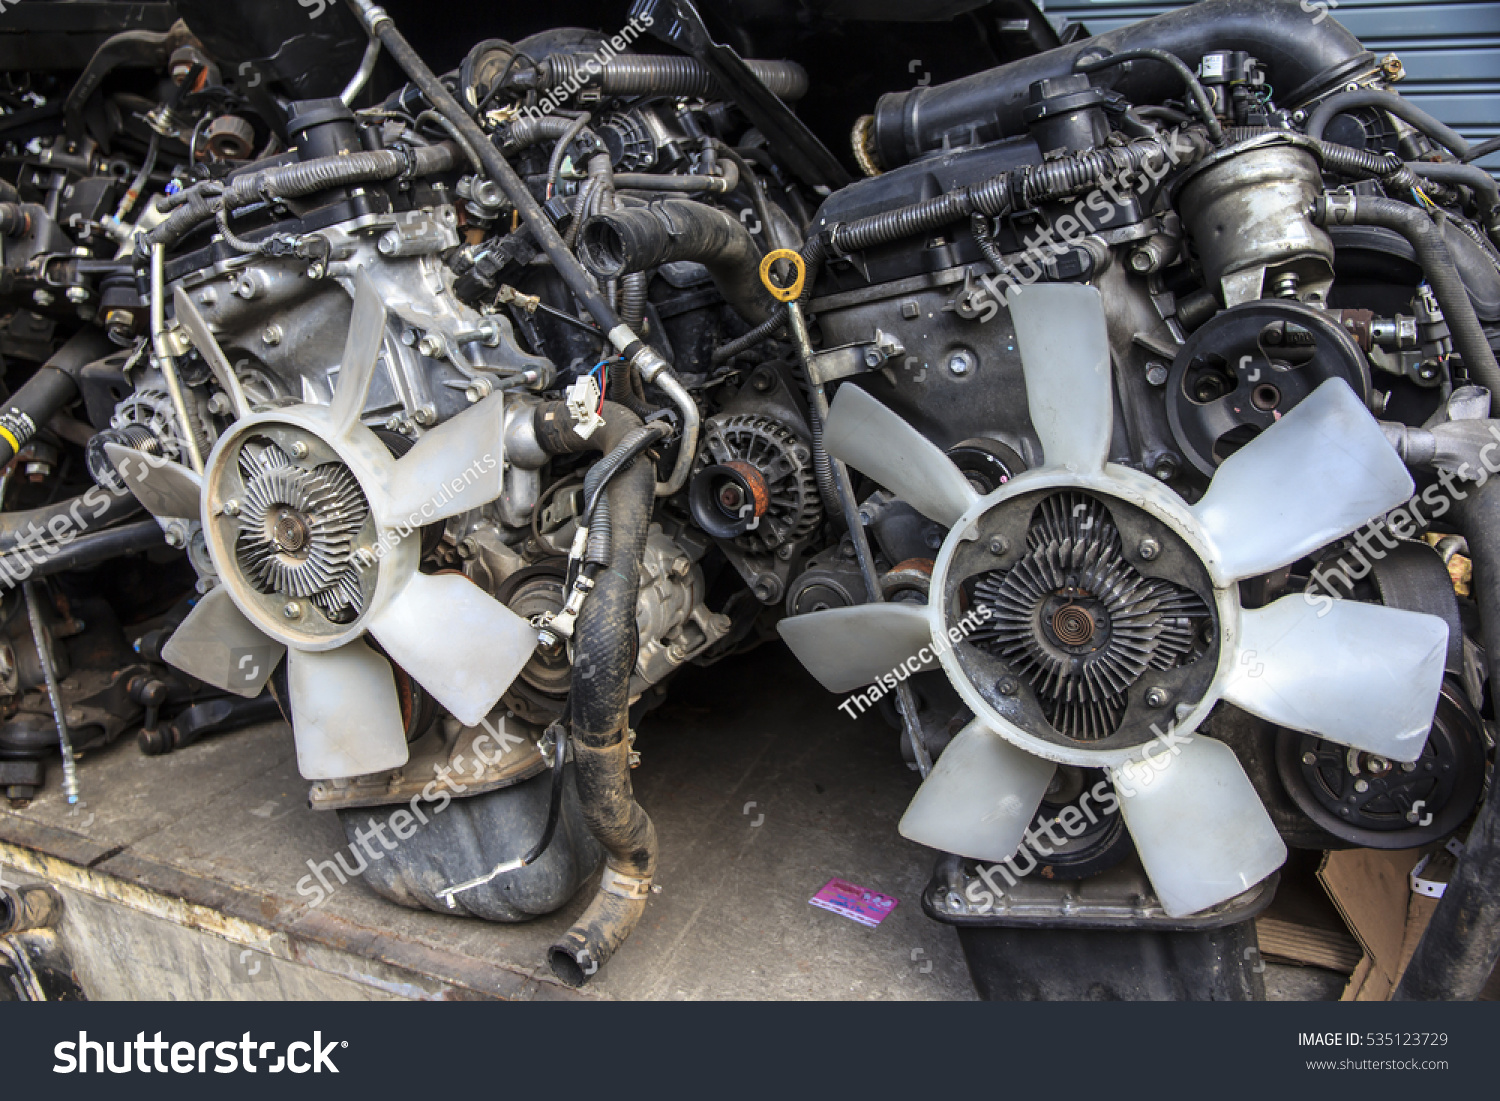 Old Car Spare Parts Thailand Stock Photo (Safe to Use) 535123729 ...